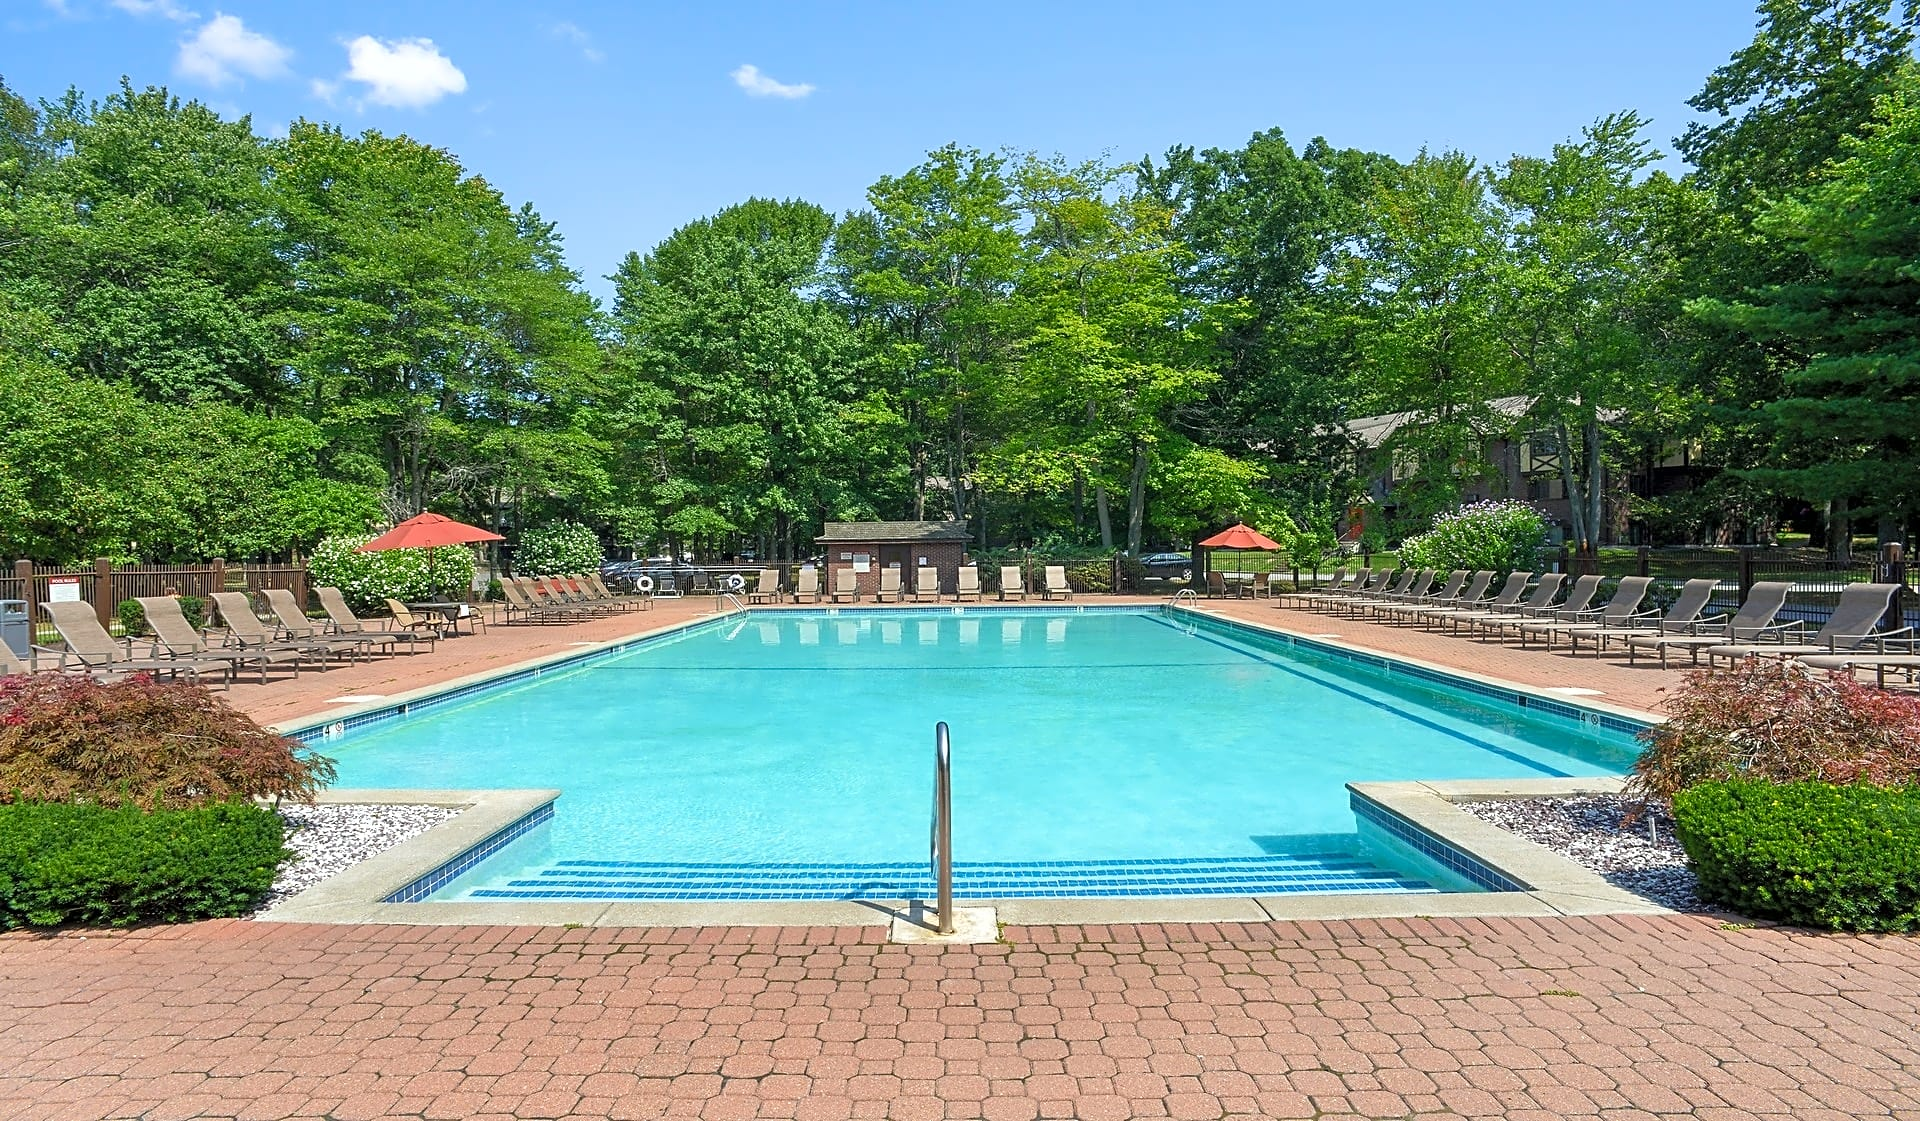 Take a dip in our outdoor pool for leisure or recreation